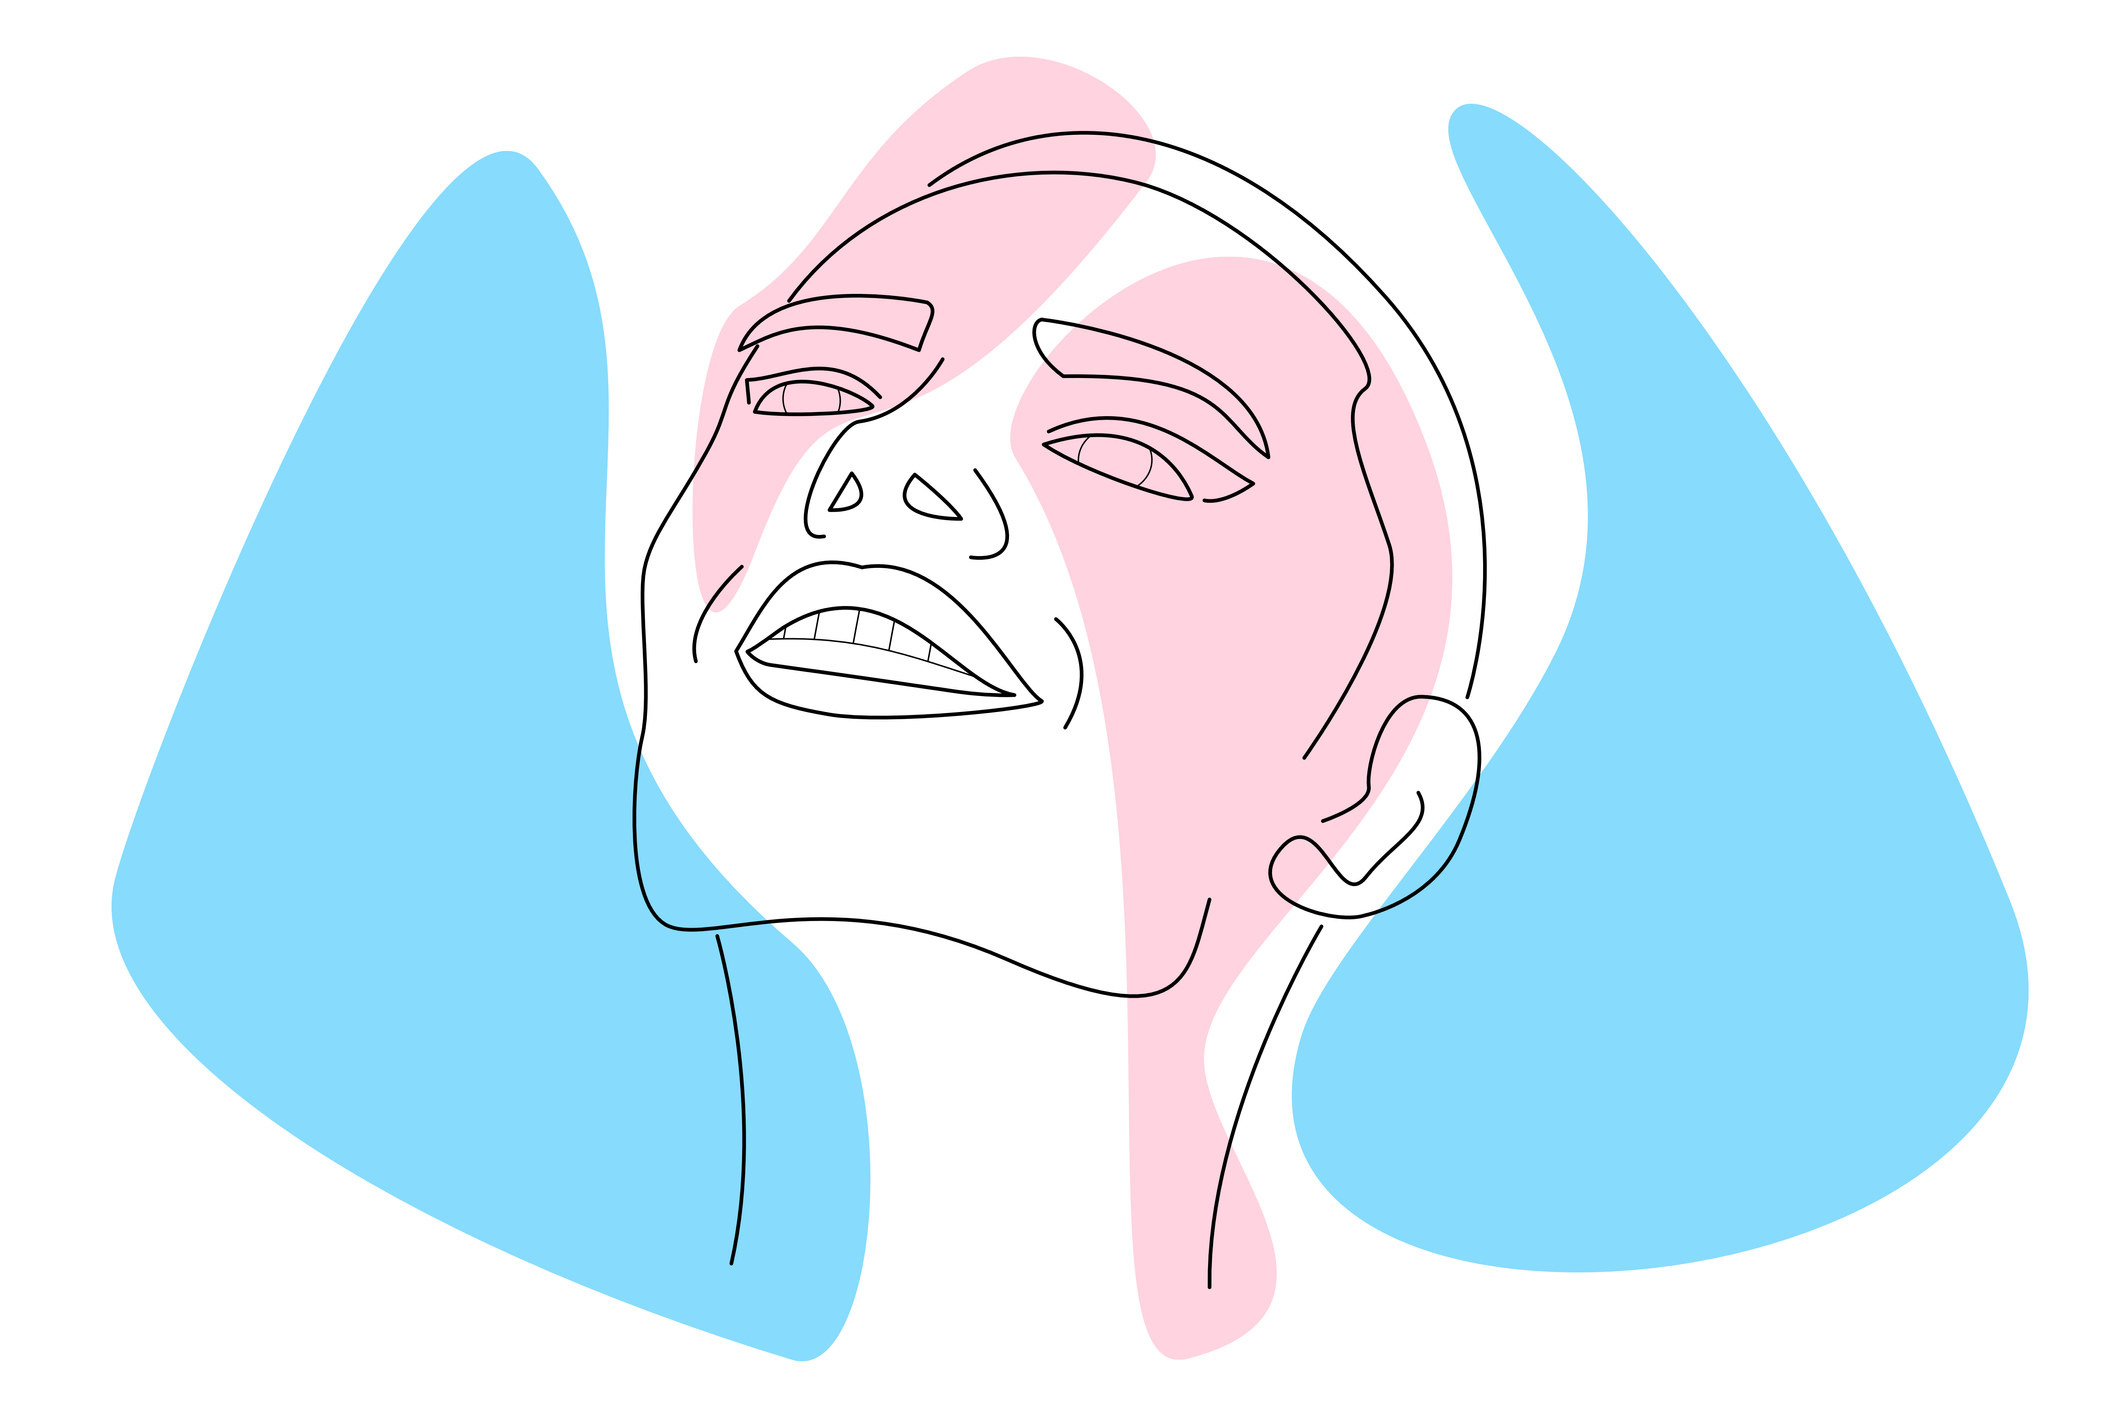 Hand drawn face on abstract trans flag